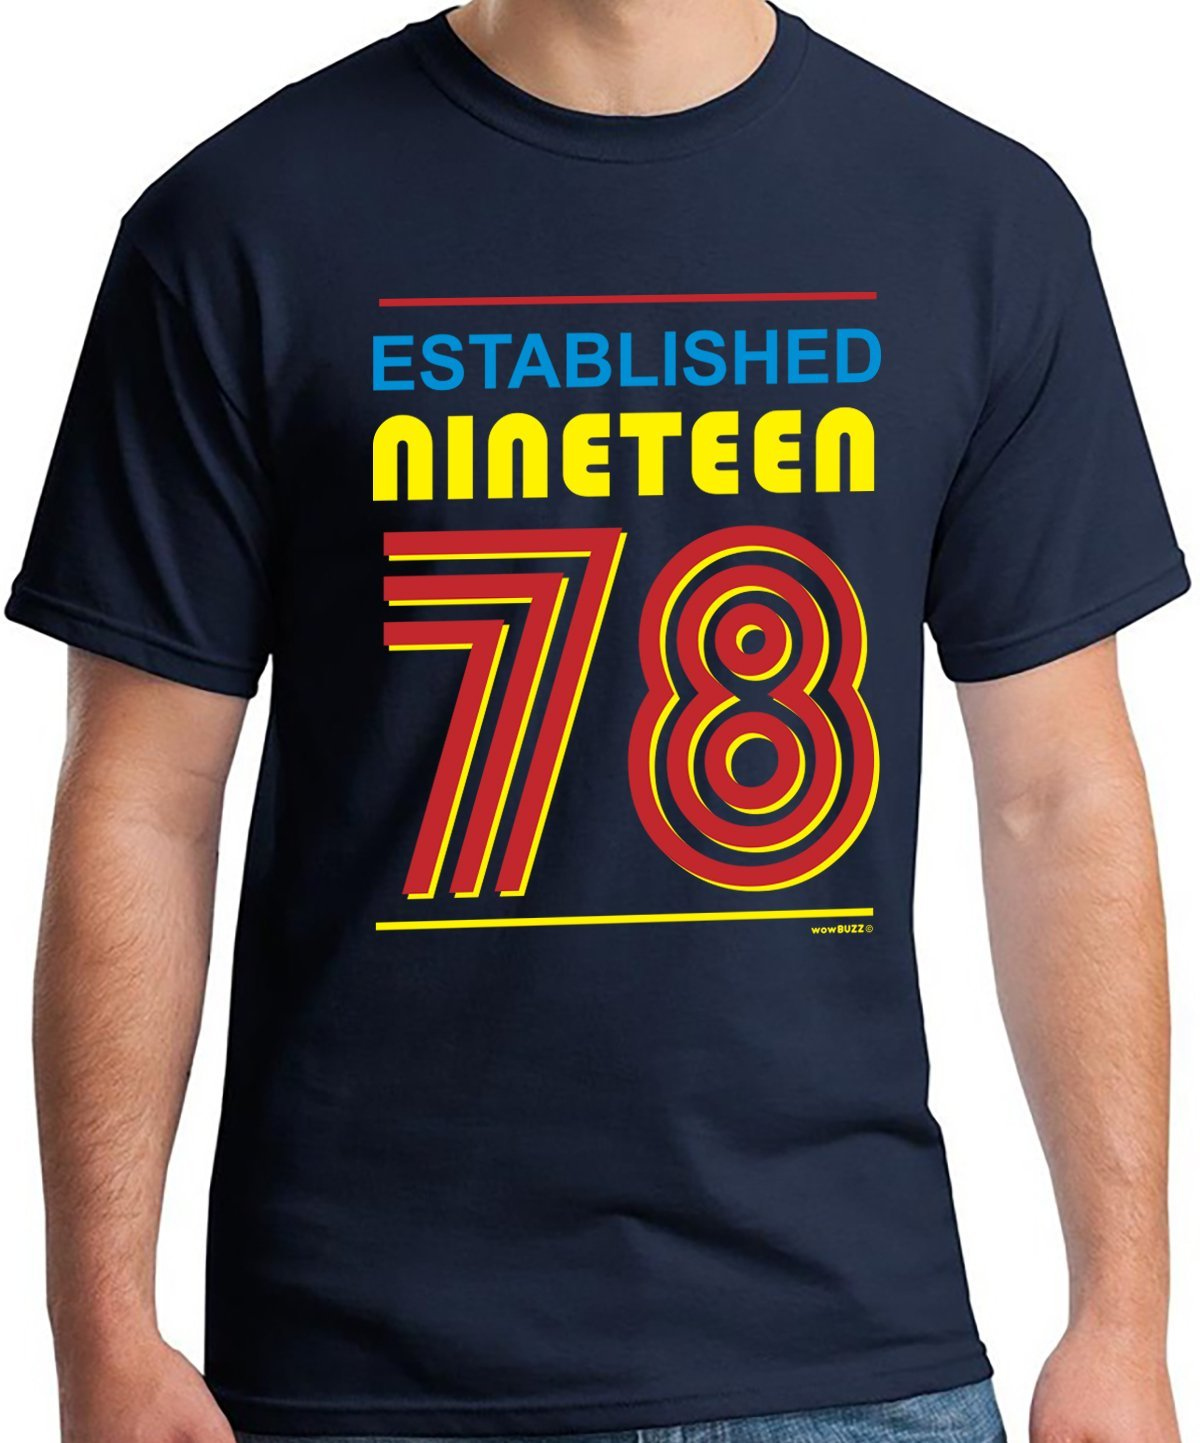 40th Birthday Gifts for Men Established 1978 T-Shirt